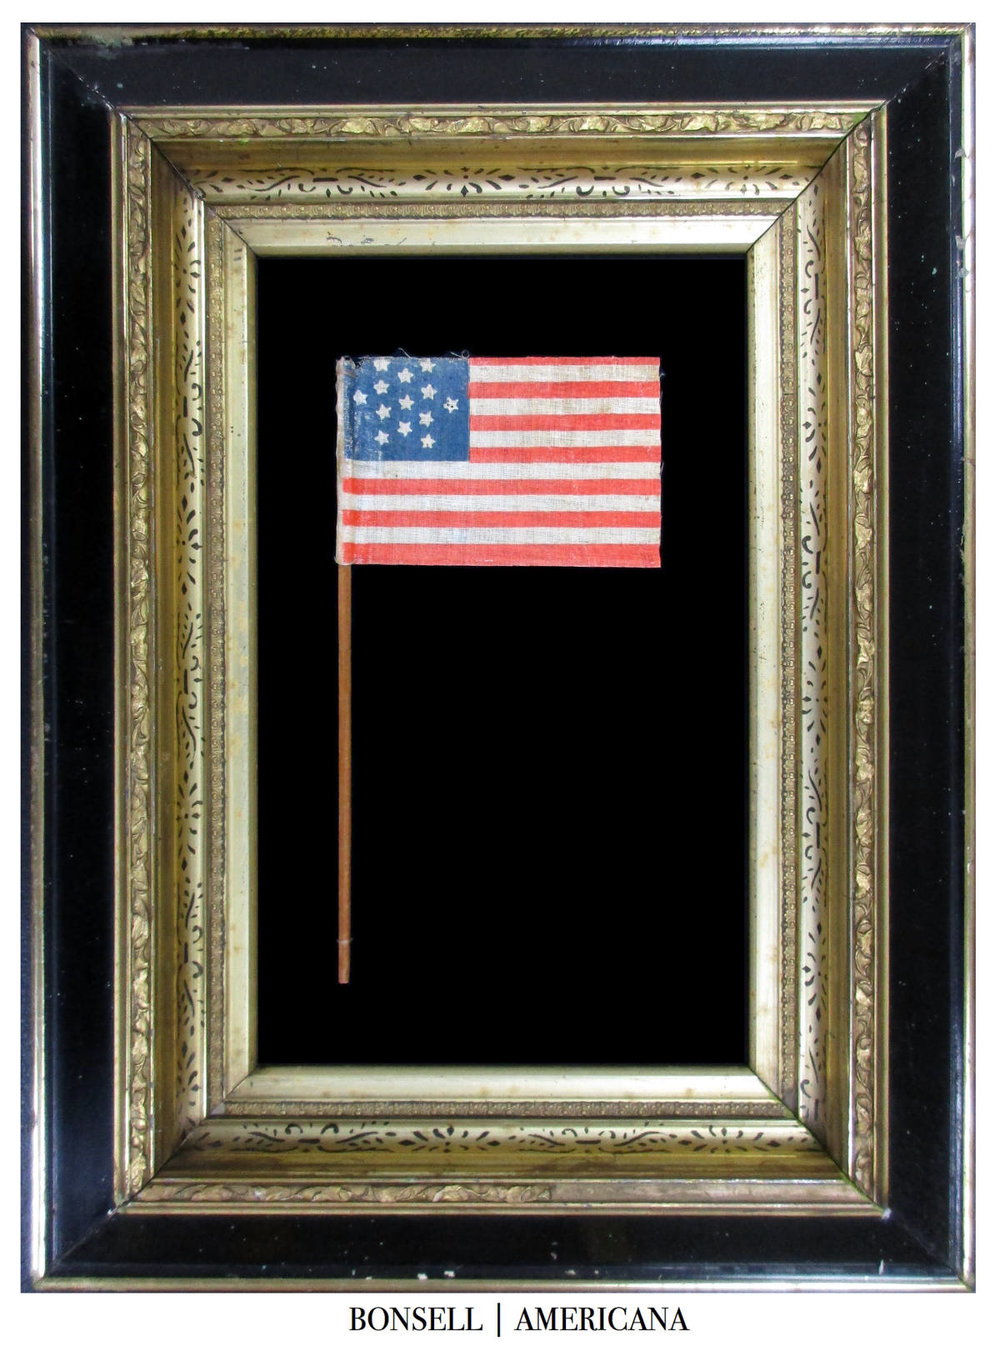 13 Star Antique Flag with a Star of David